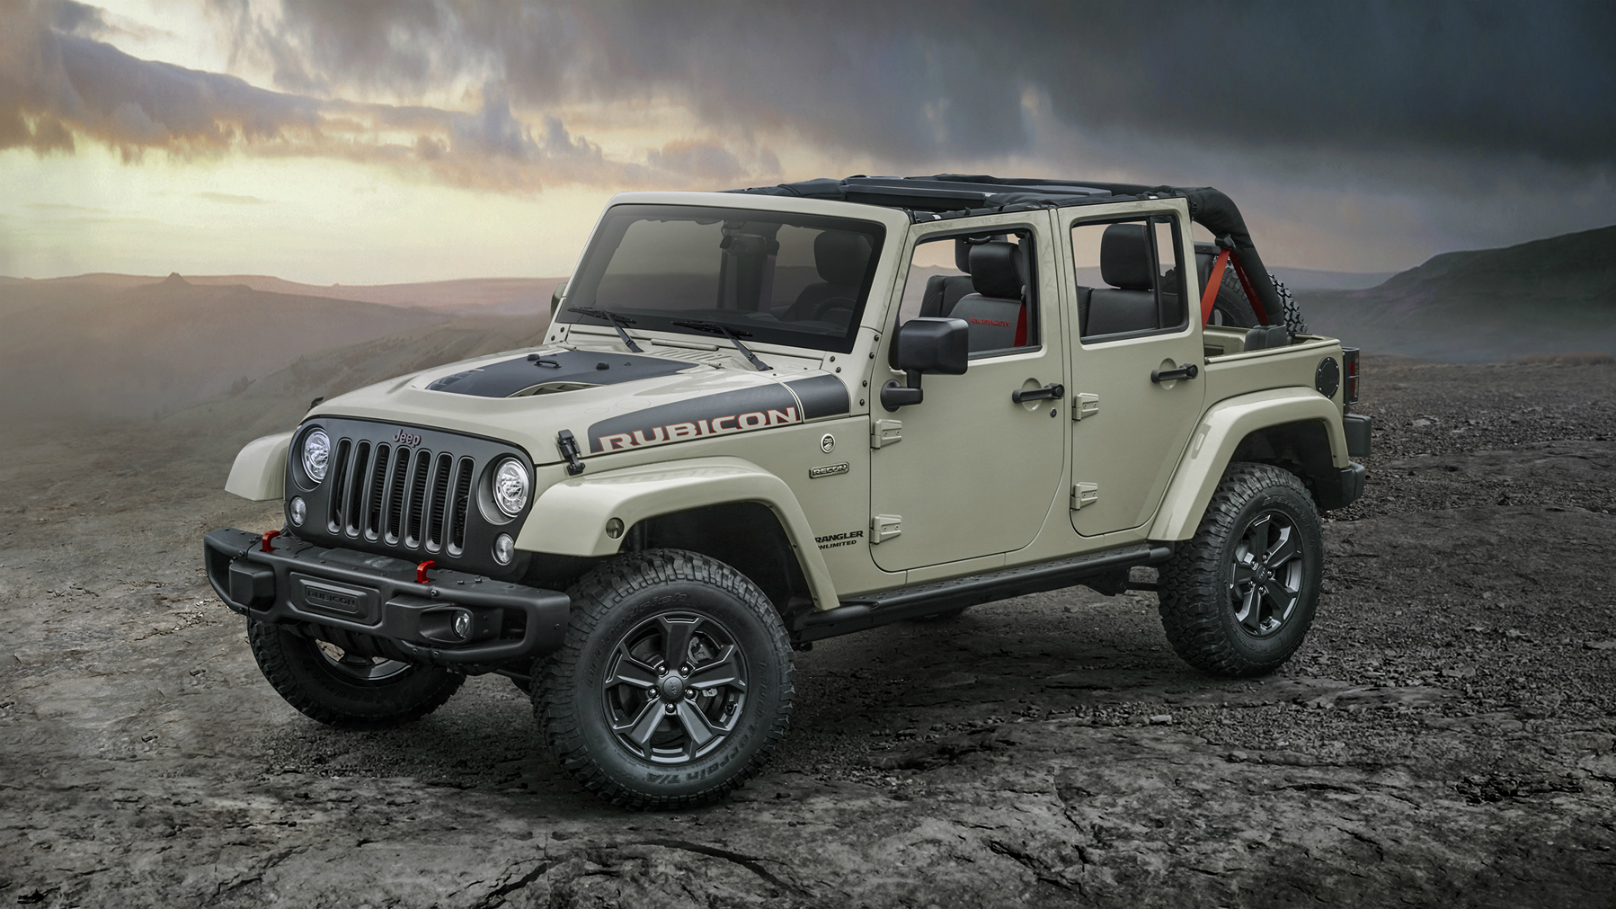 Jeep Wrangler Recon